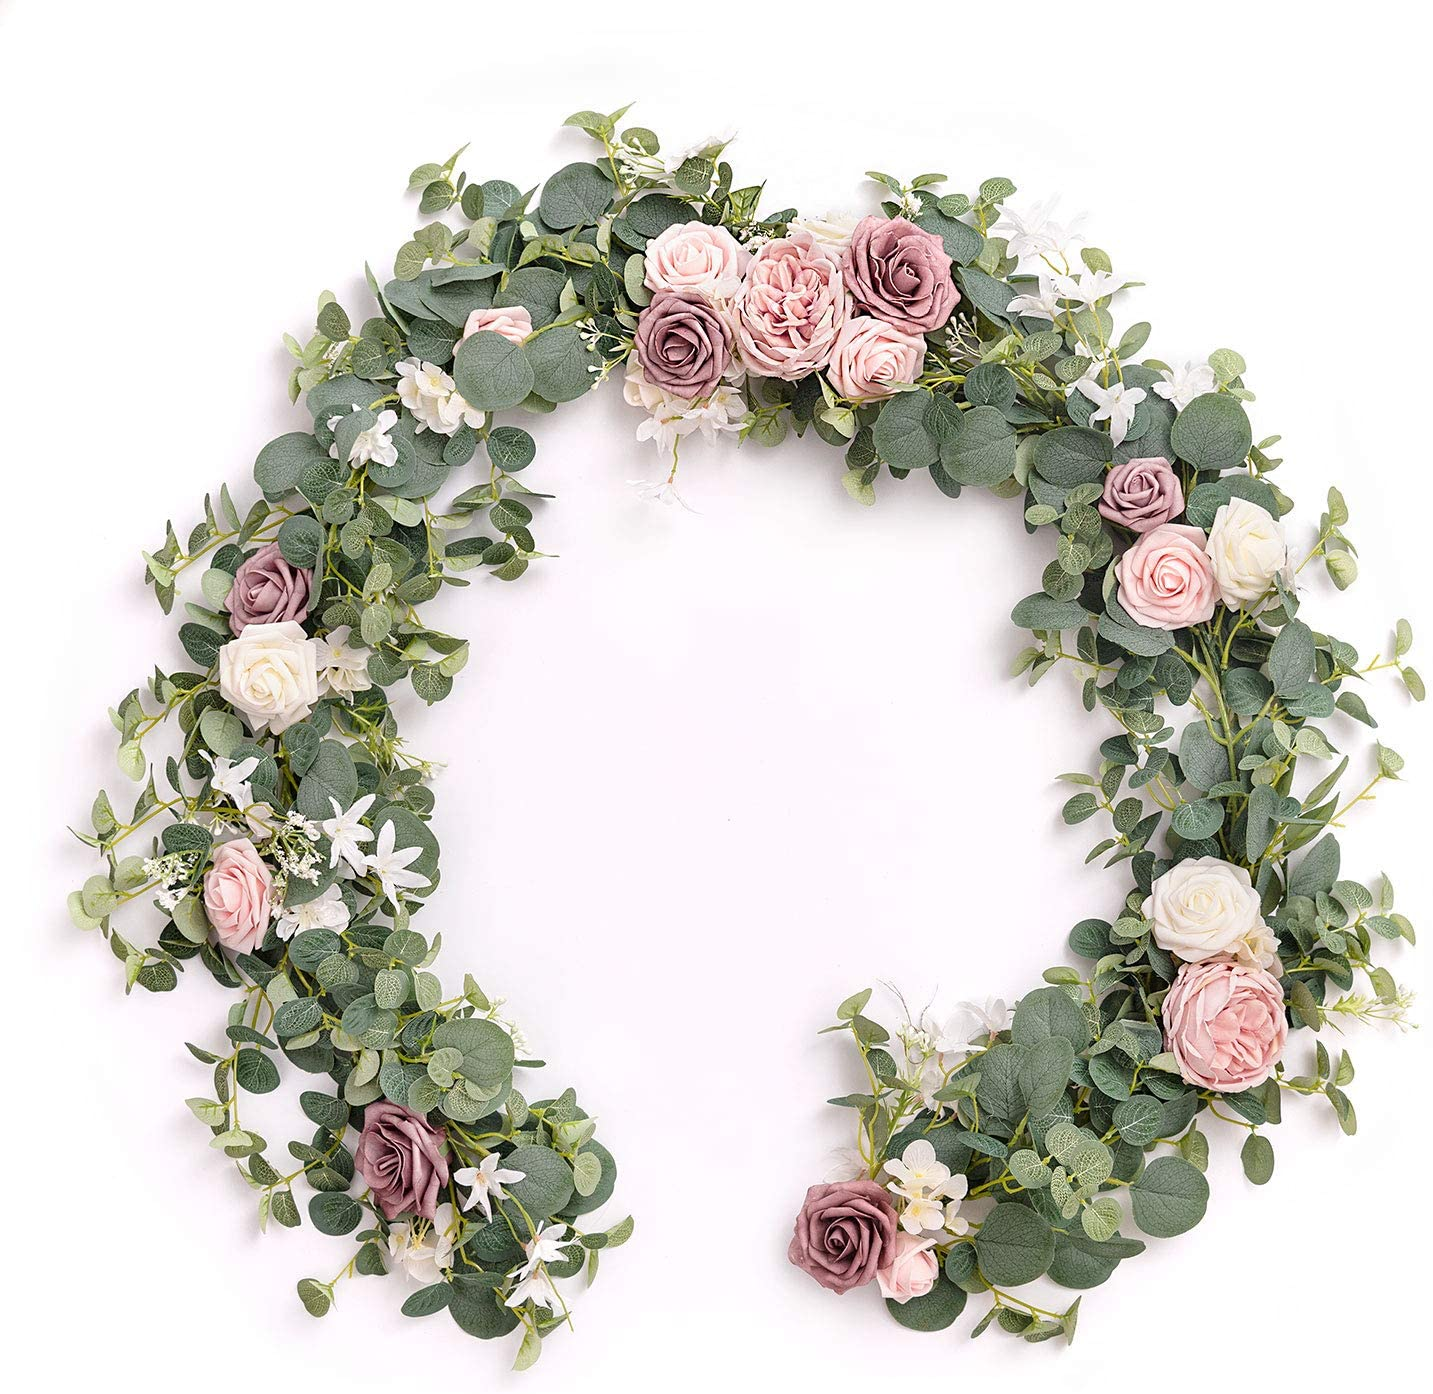 Ling's Surprise price moment Genuine Free Shipping Eucalyptus Garland Runner with 6FT,Table Flowers